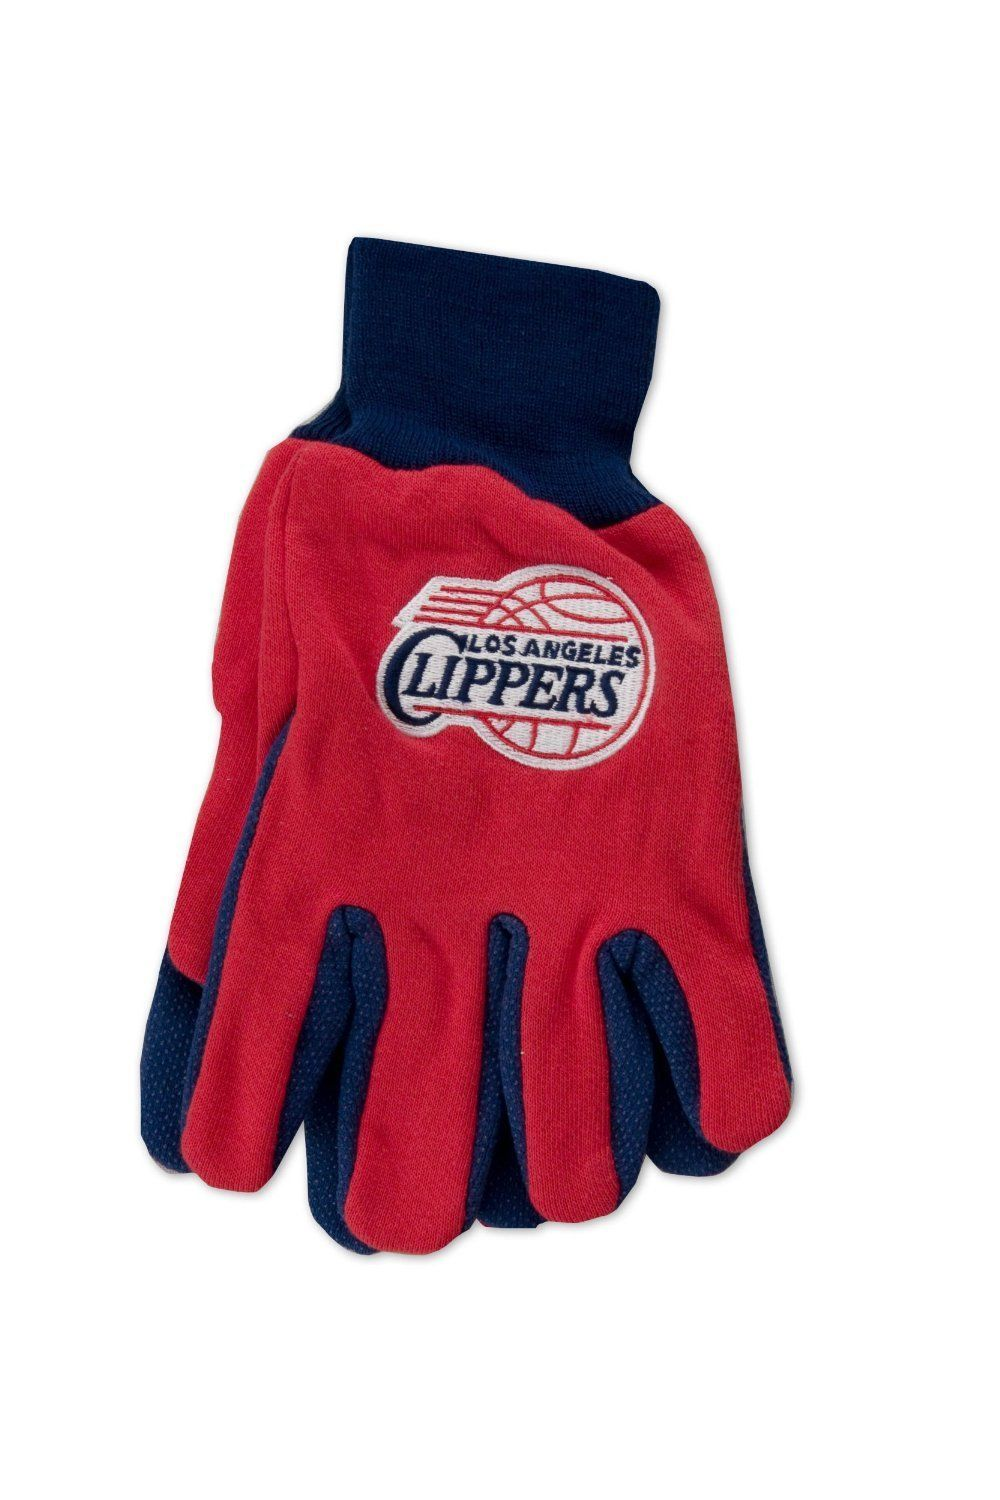 Wincraft NBA Los Angeles Clippers Two Tone Utility Gloves 9808